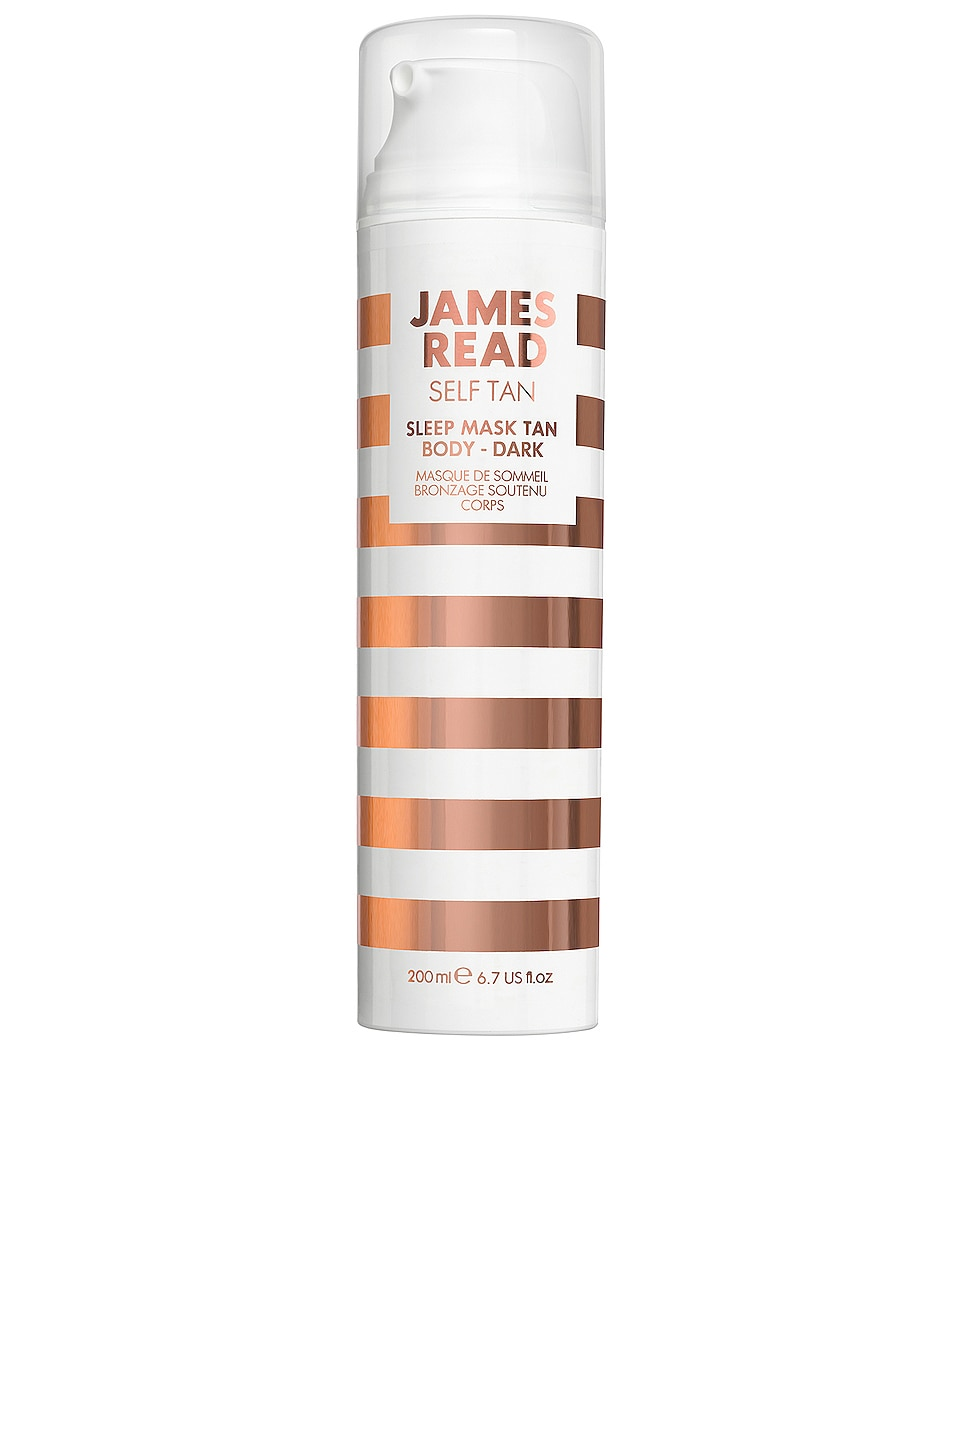 James Read Tan Sleep Mask Tan Body Go Darker